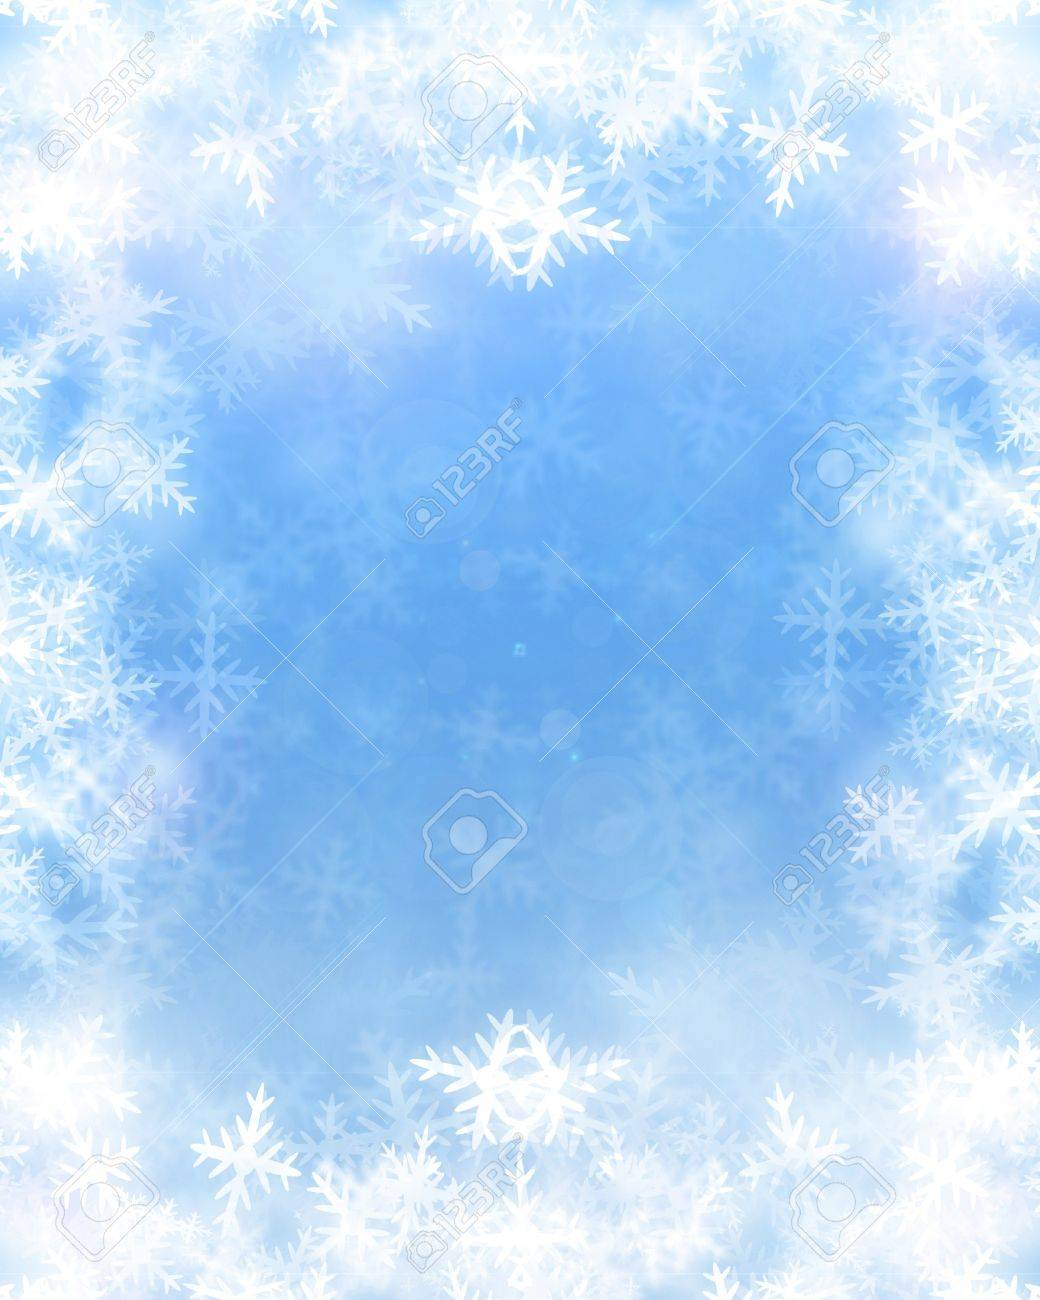 Winter background with some soft highlights and snow flakes Stock Photo - 15612673